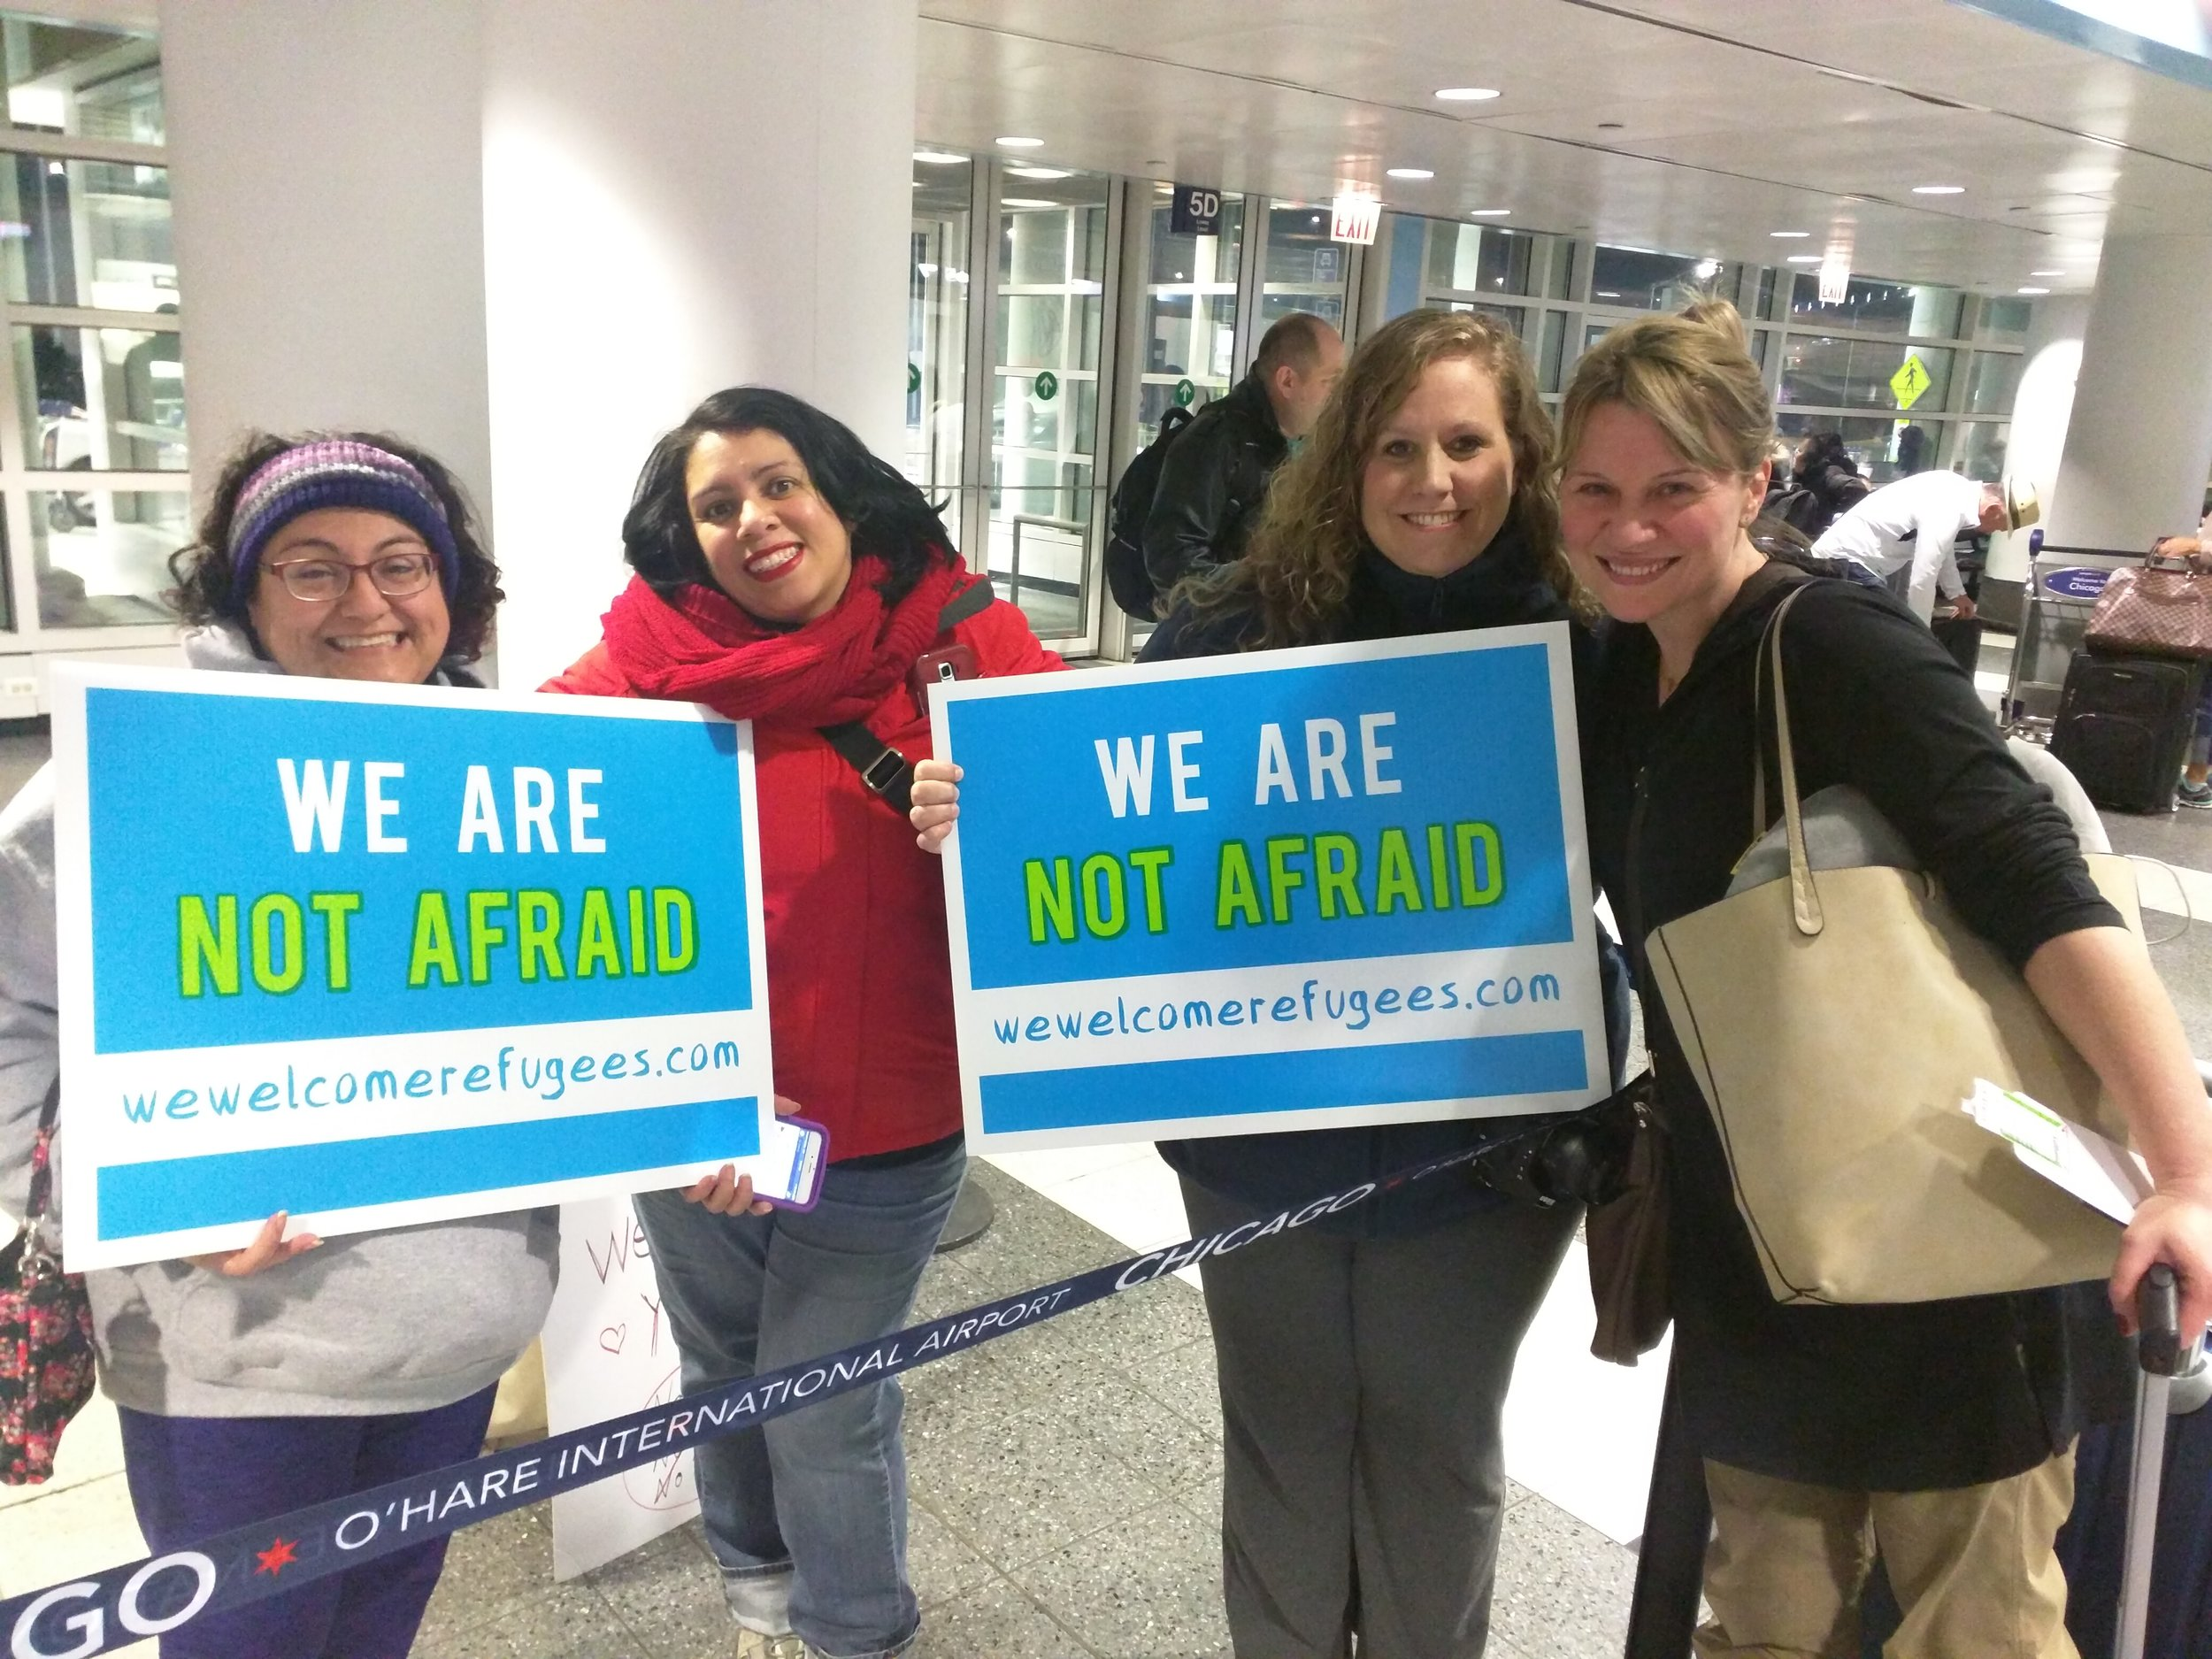 Chicago protesters (from left) Urzula Urzua, Ges Wernher, and Mahra Seward, welcome (right) Sara Ferrara, a UK native, moments after Judge Robart blocked Trumps travel ban.  (Photo/Antonio Garcia)